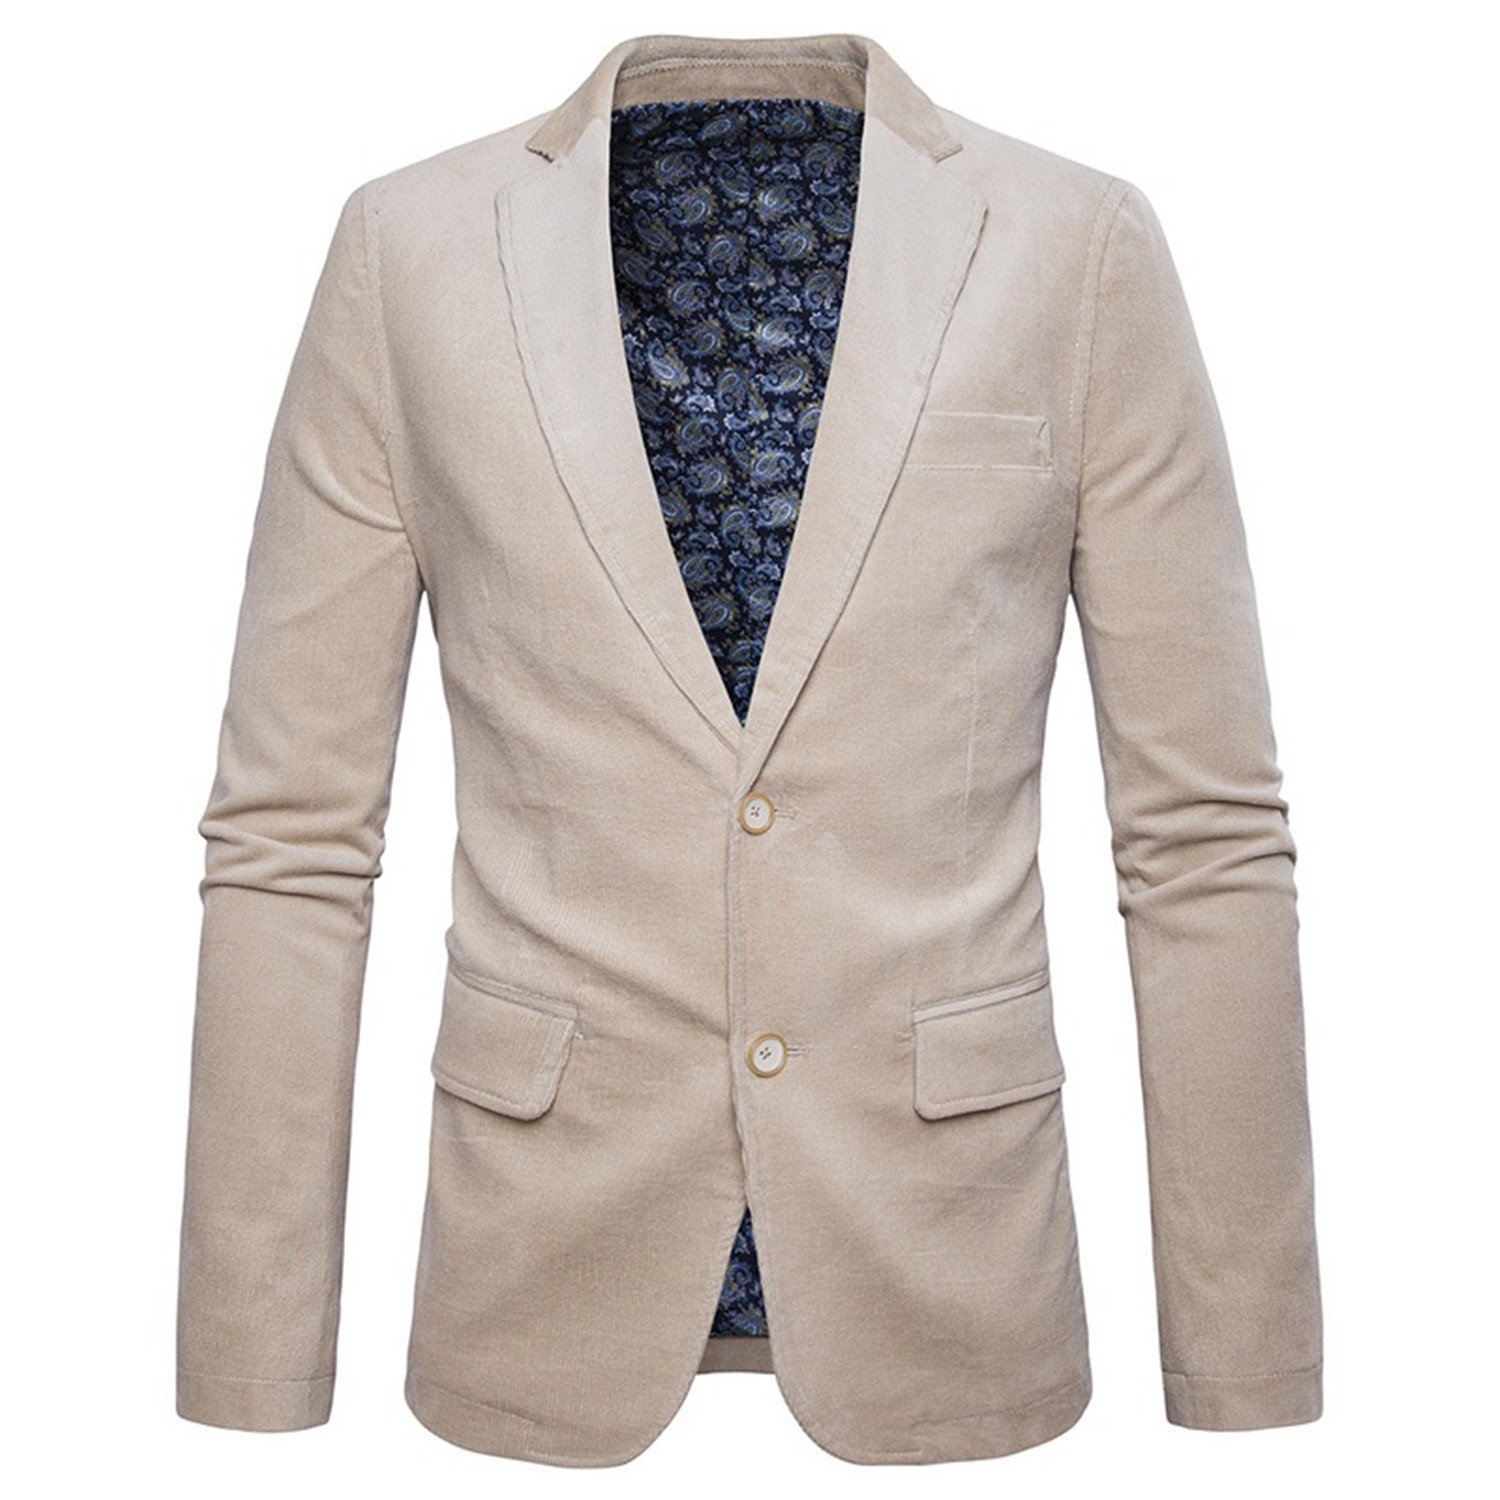 Single Breasted Two Button Corduroy Dress Suit Jacket Blazer ...